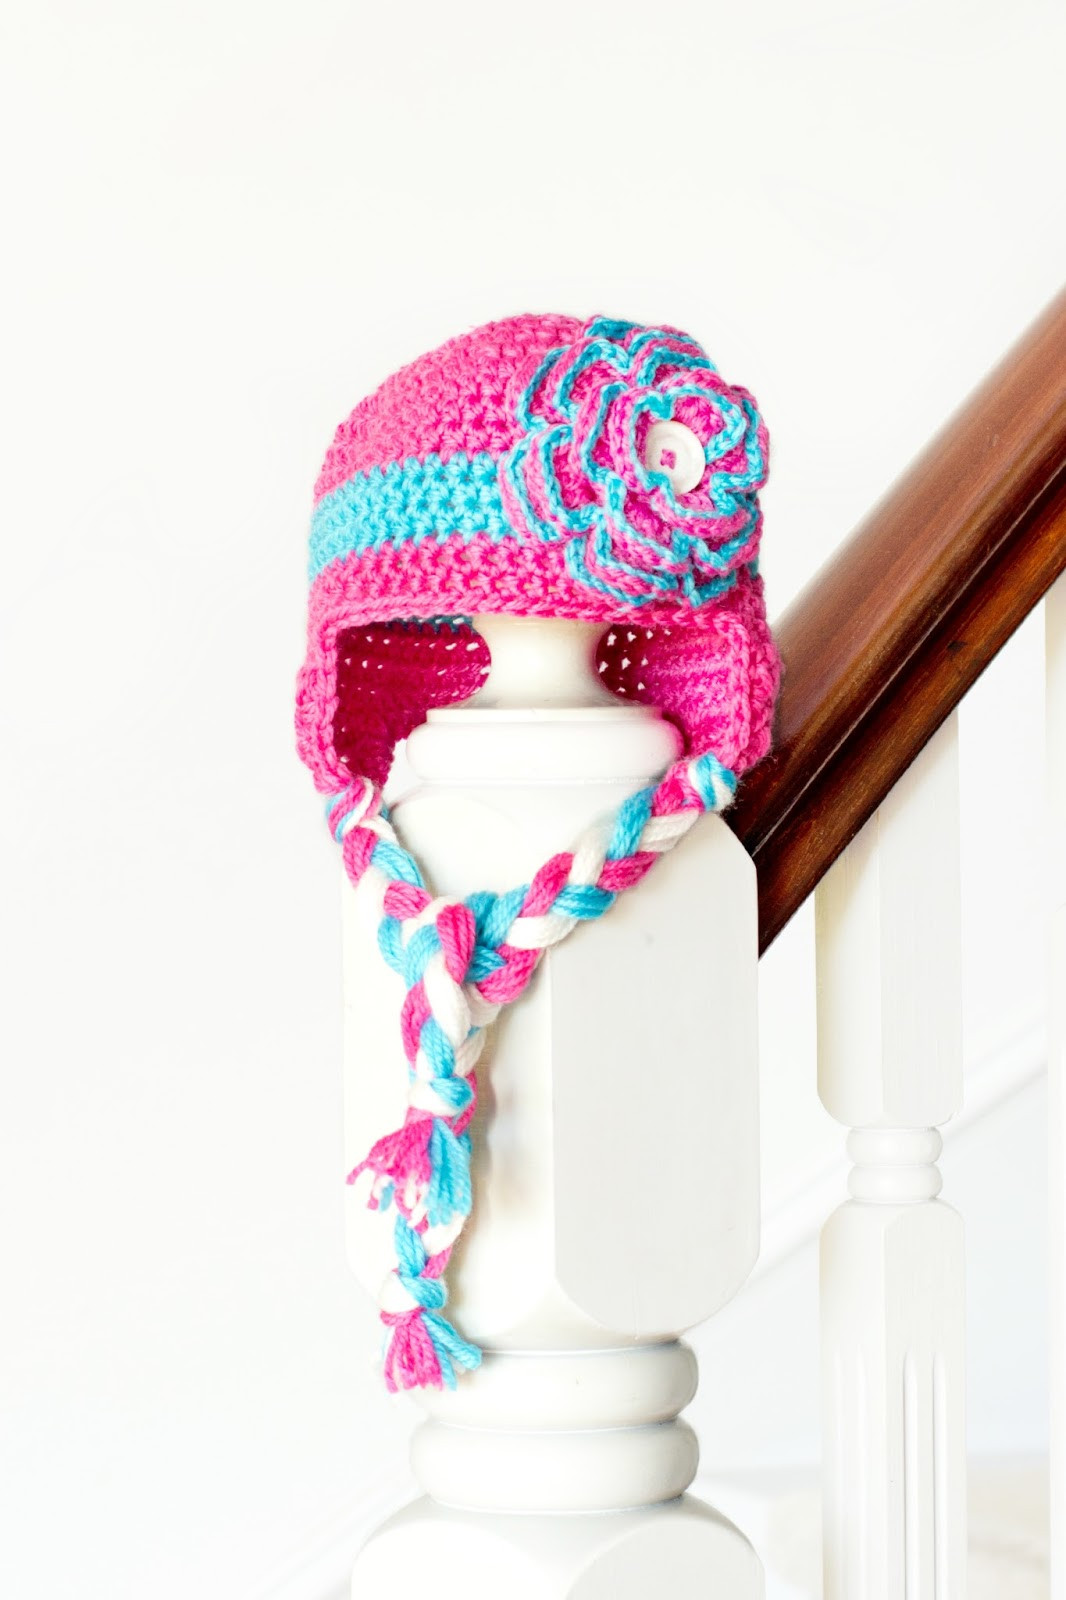 Inspirational 41 Adorable Crochet Baby Hats & Patterns to Make Crochet Flower for Hat Of Beautiful 45 Photos Crochet Flower for Hat